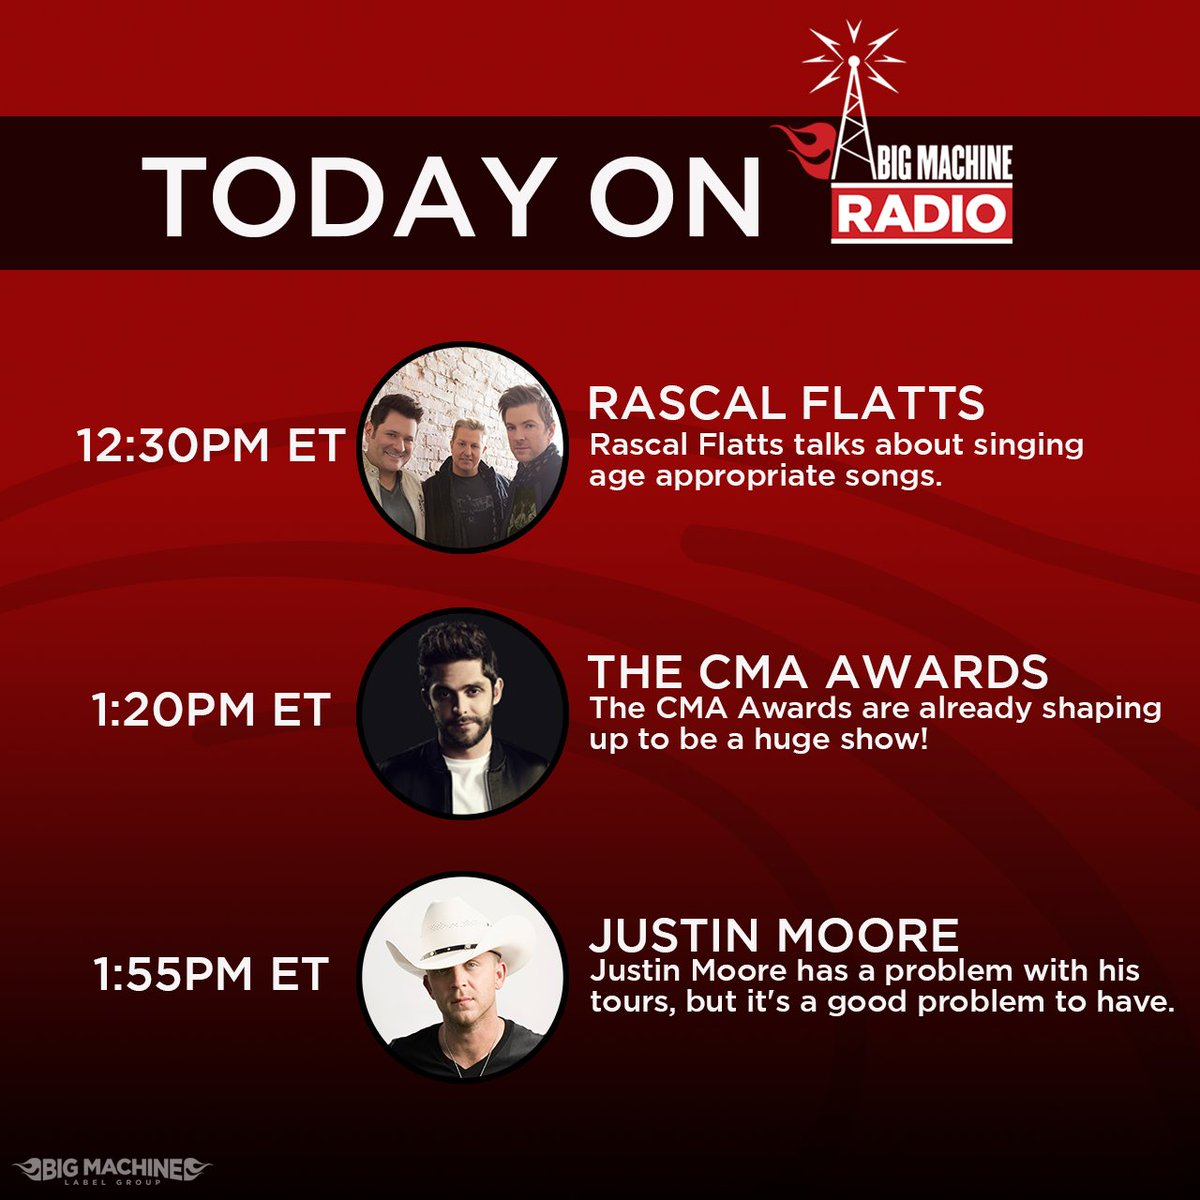 #HappyThursday! Make sure you listen to @BigMachine Radio all day! Take a look at who we&#39;re talking to...  http:// smarturl.it/BMRadio  &nbsp;  <br>http://pic.twitter.com/jg2Ywm0msi